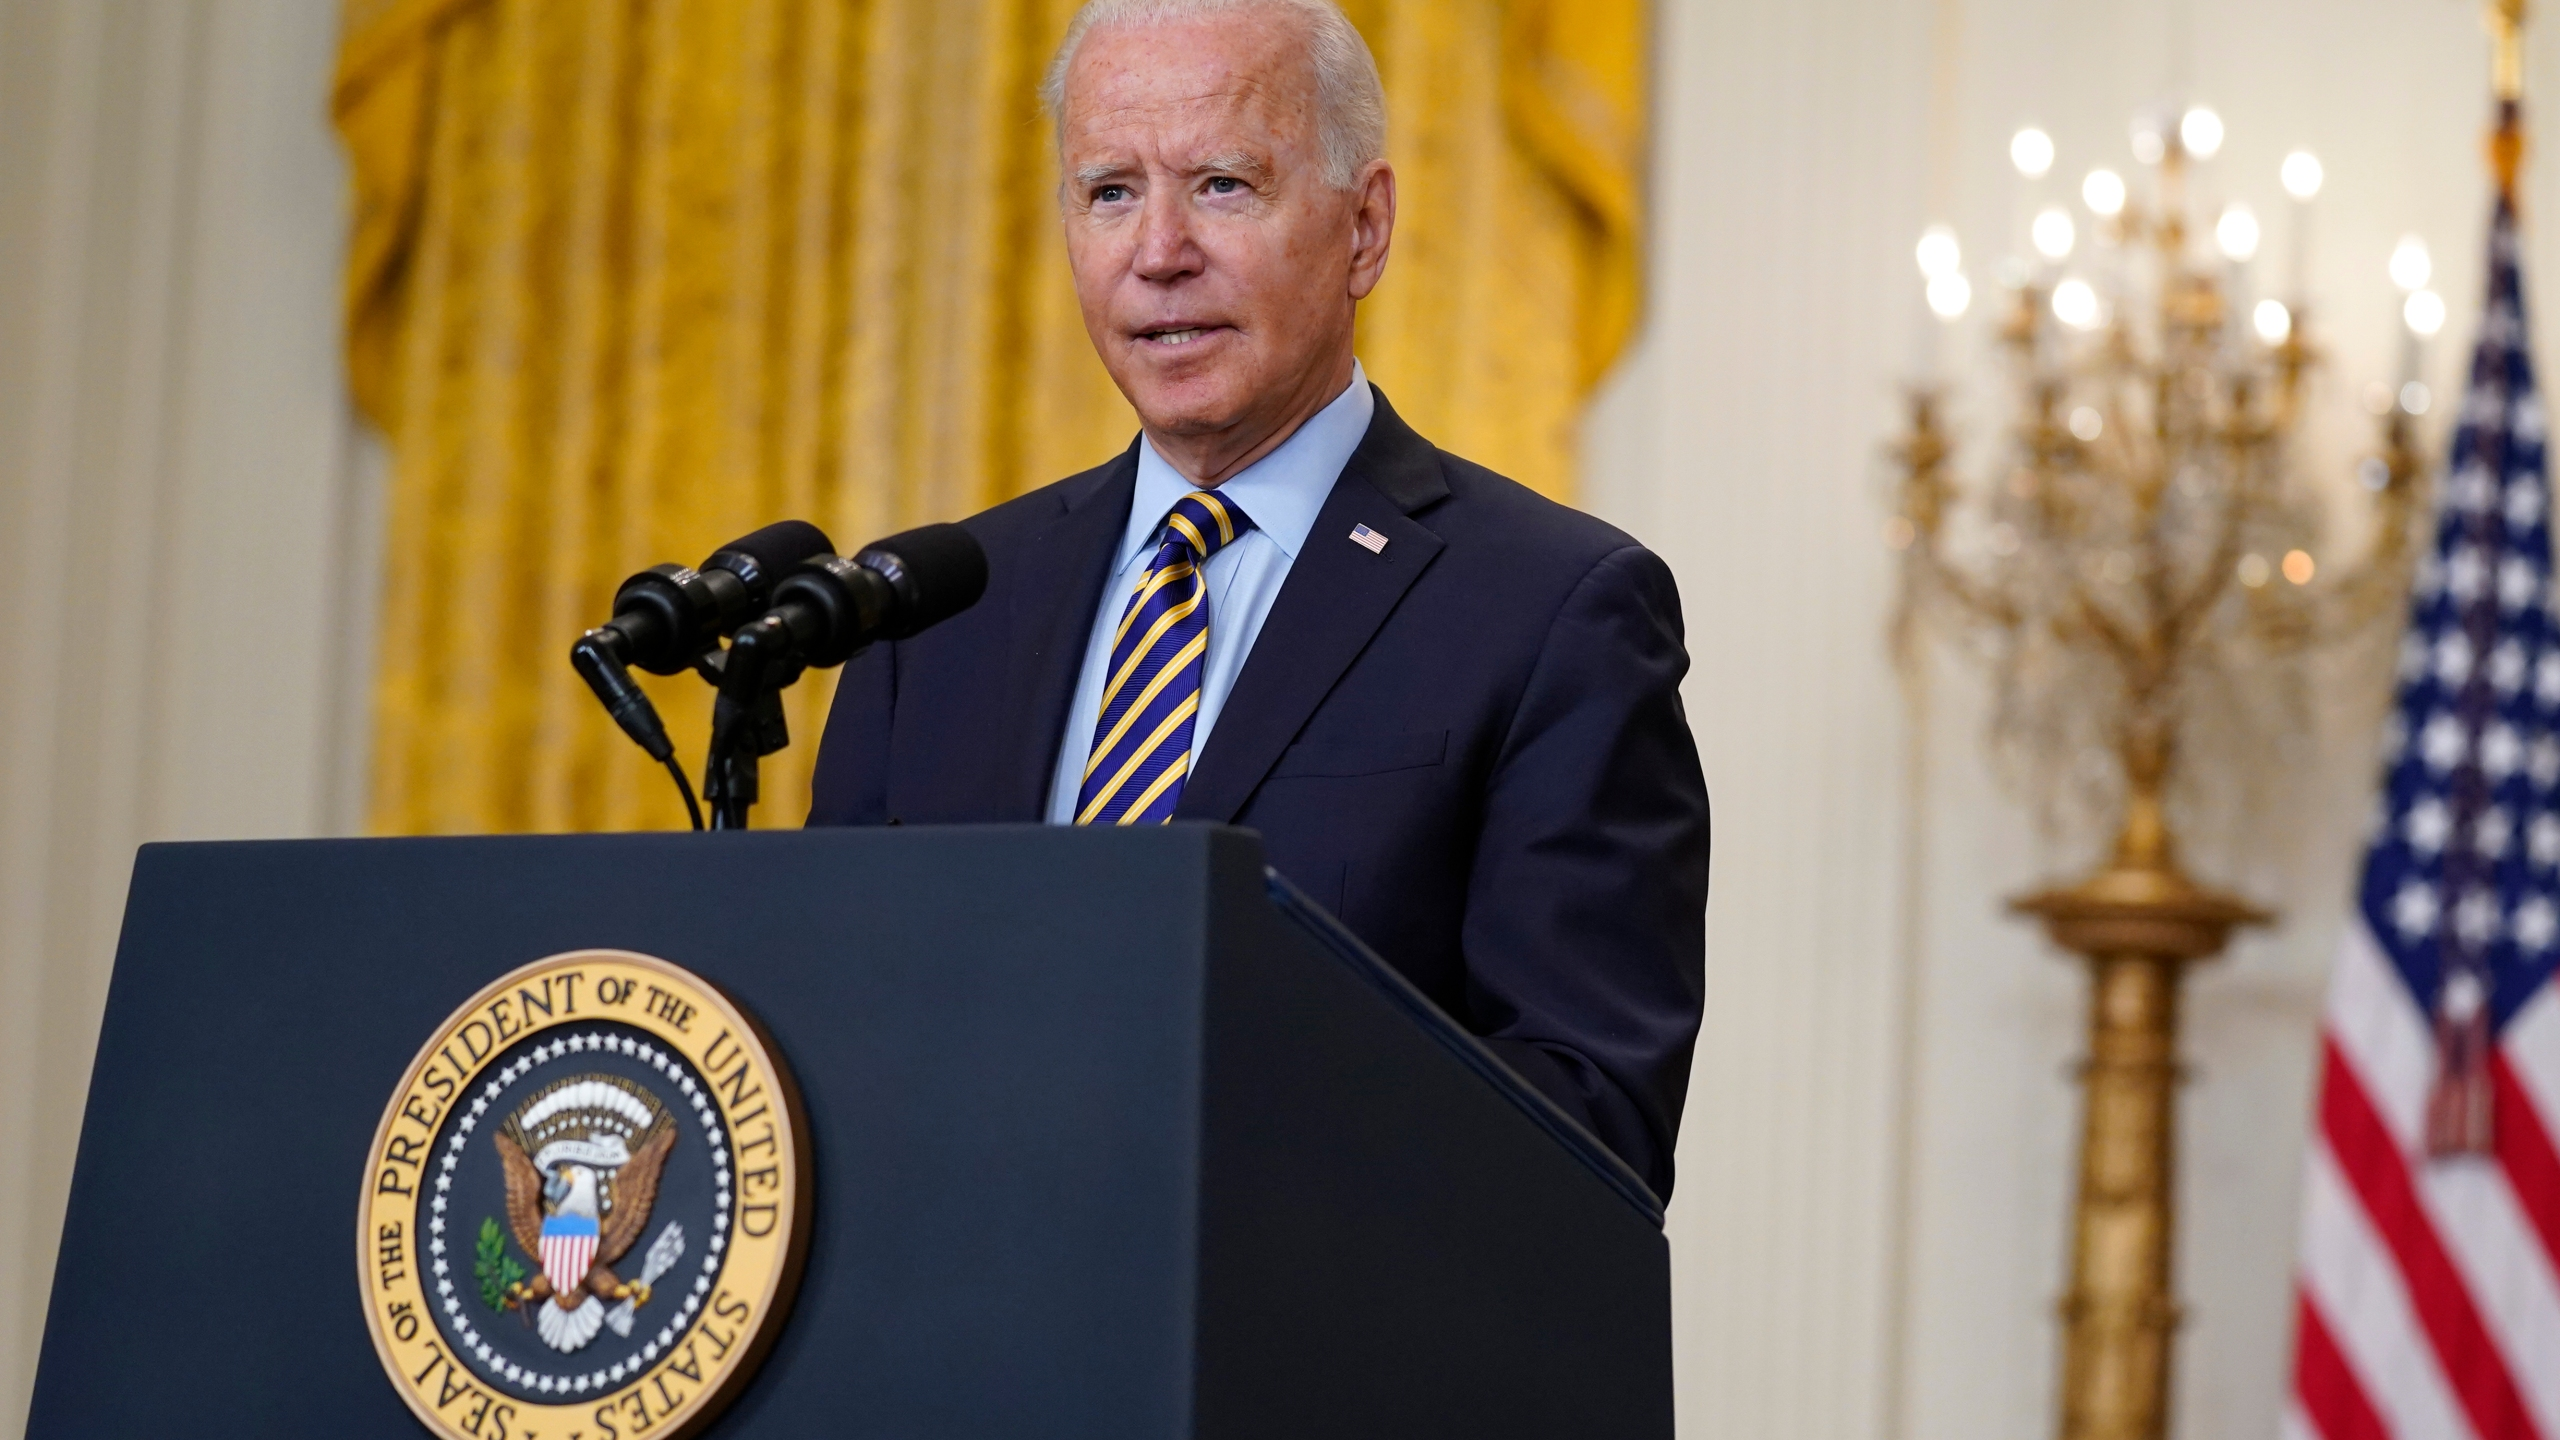 President Joe Biden speaks about the American troop withdrawal from Afghanistan in the East Room of the White House on July 8, 2021. (Evan Vucci/Associated Press)